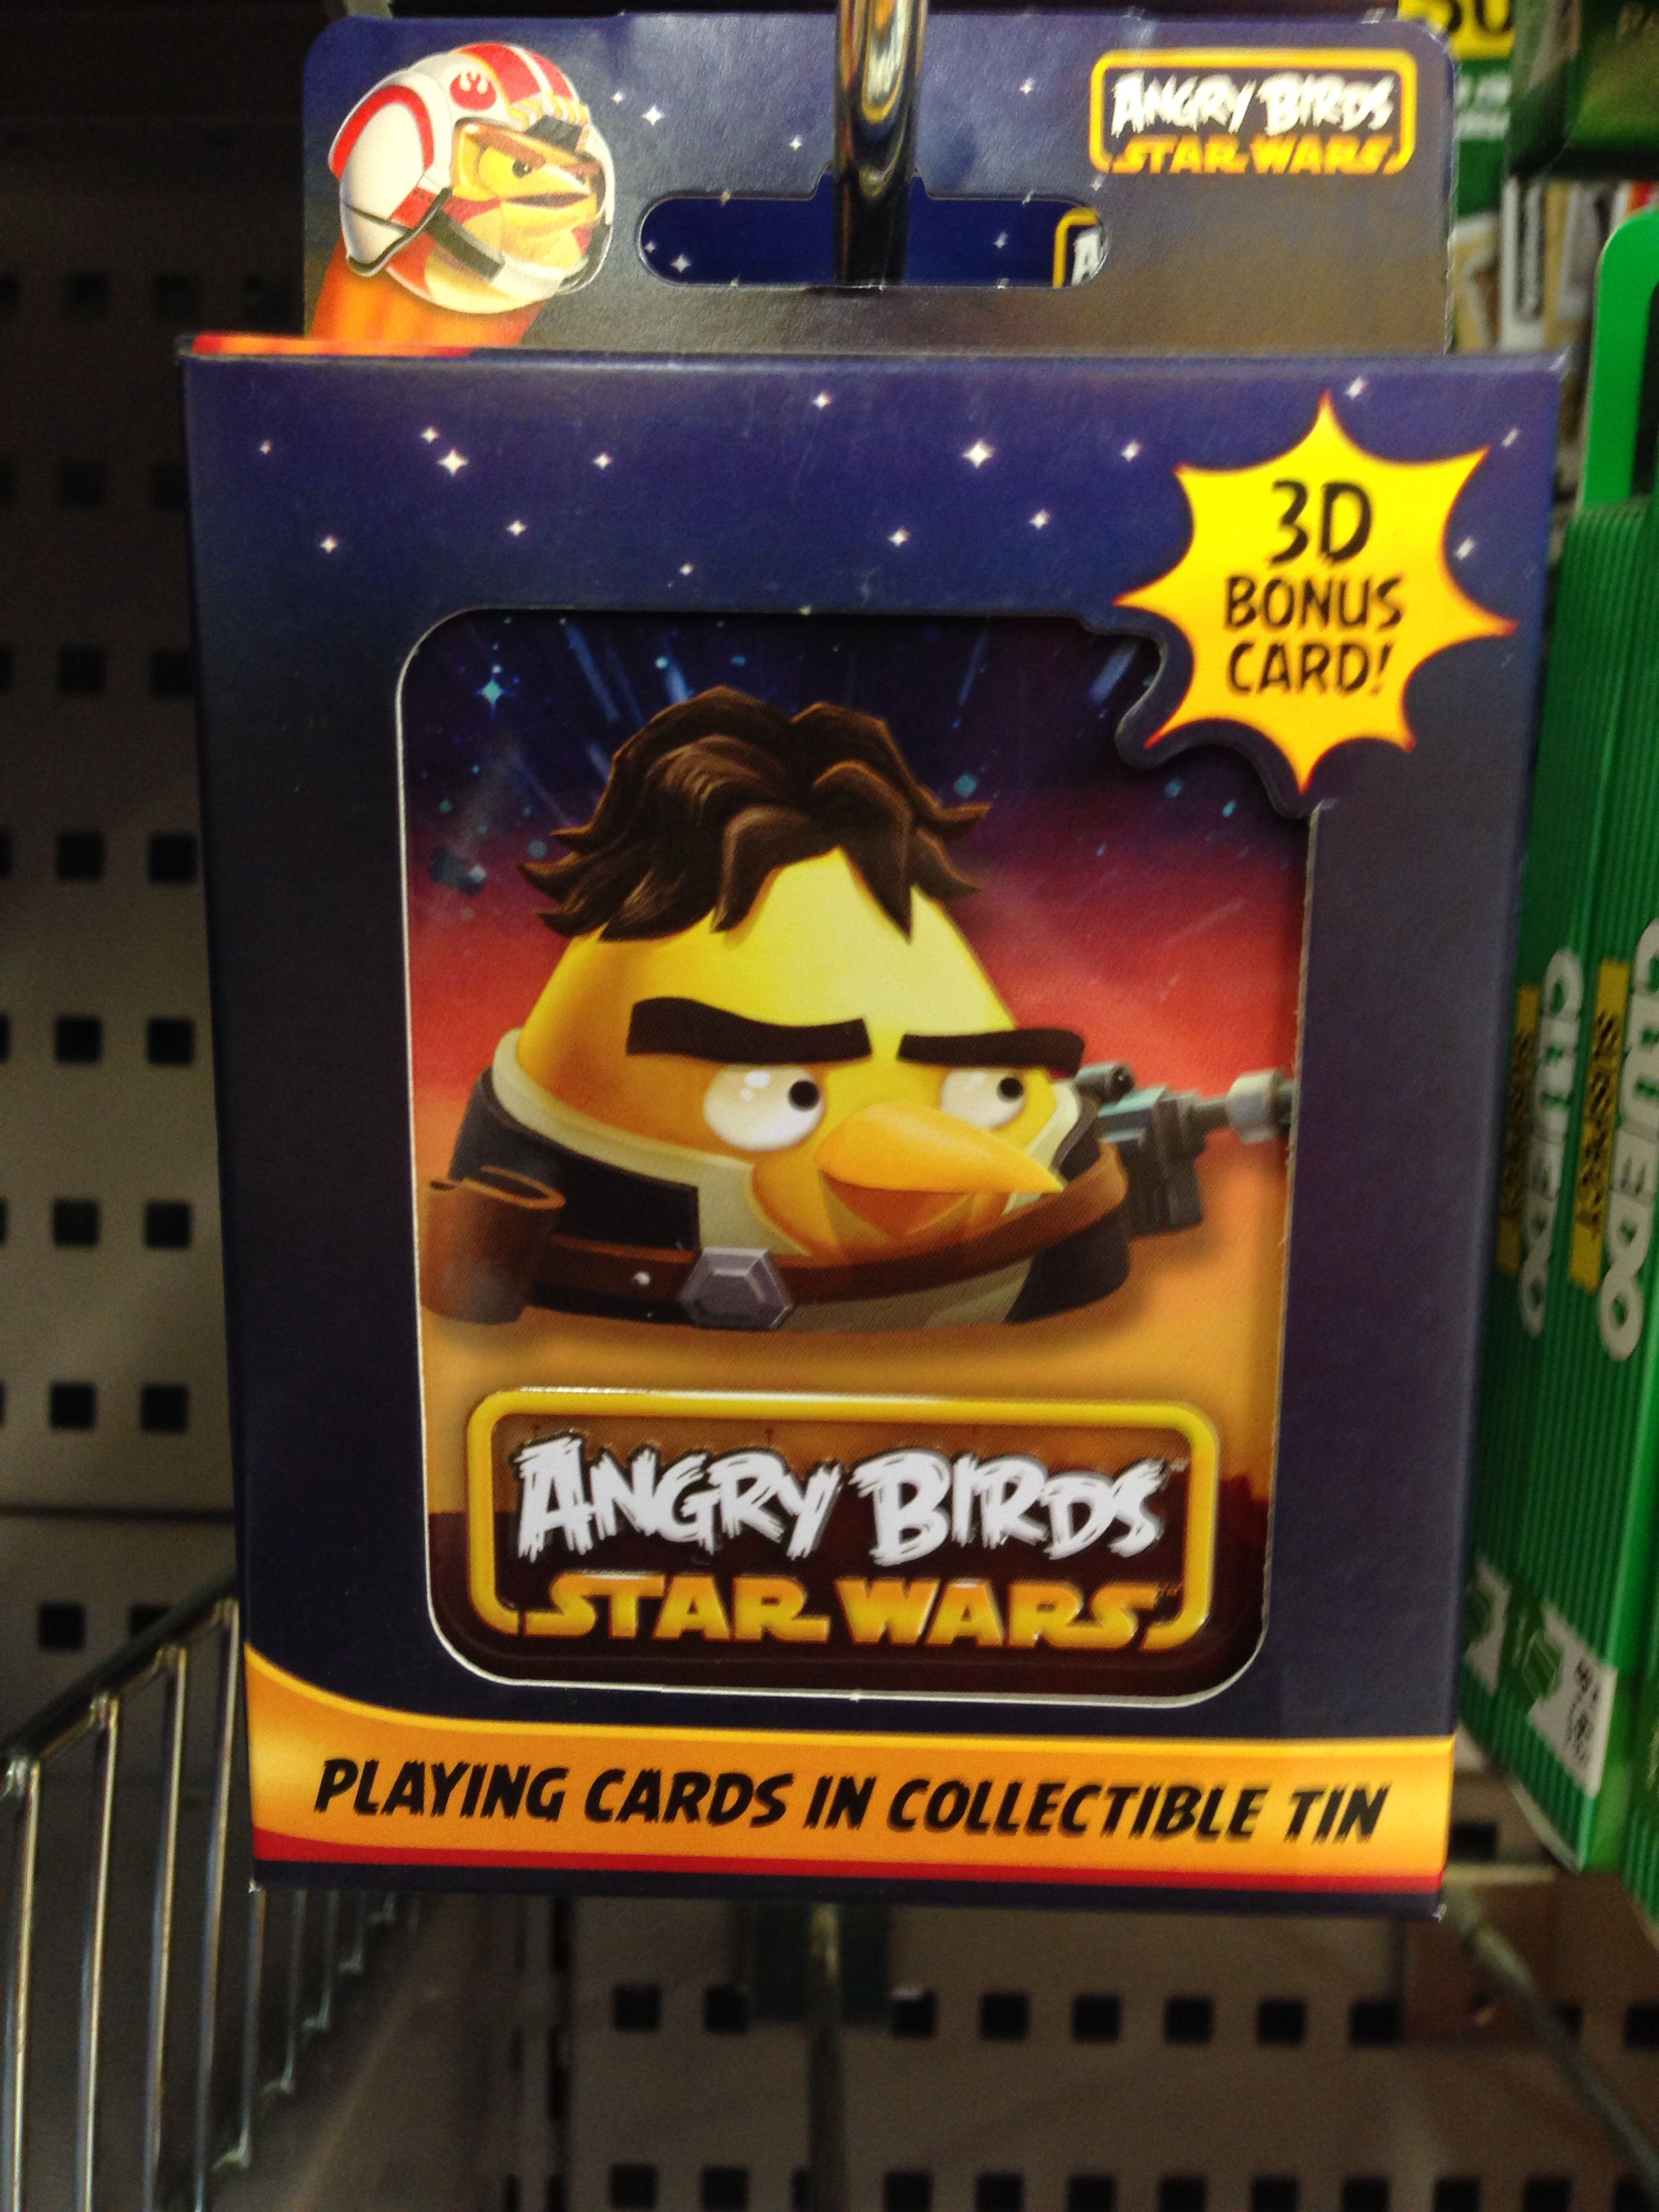 Angry Birds playing cards in collectible tin